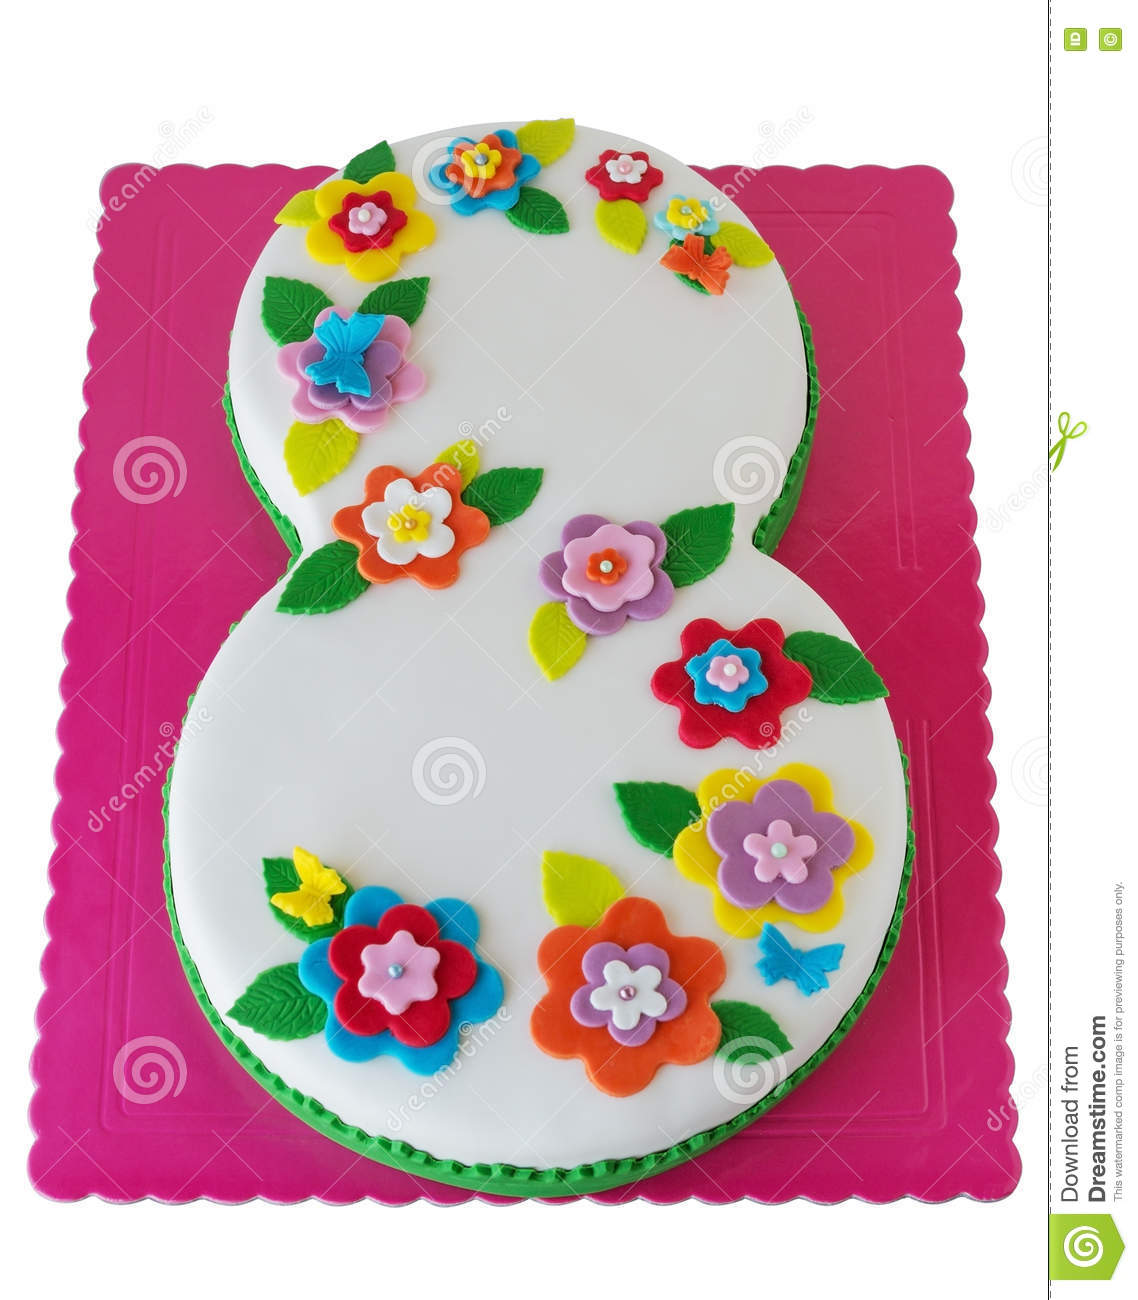 Birthday Cake With Number 8 Stock Image Image Of Anniversary